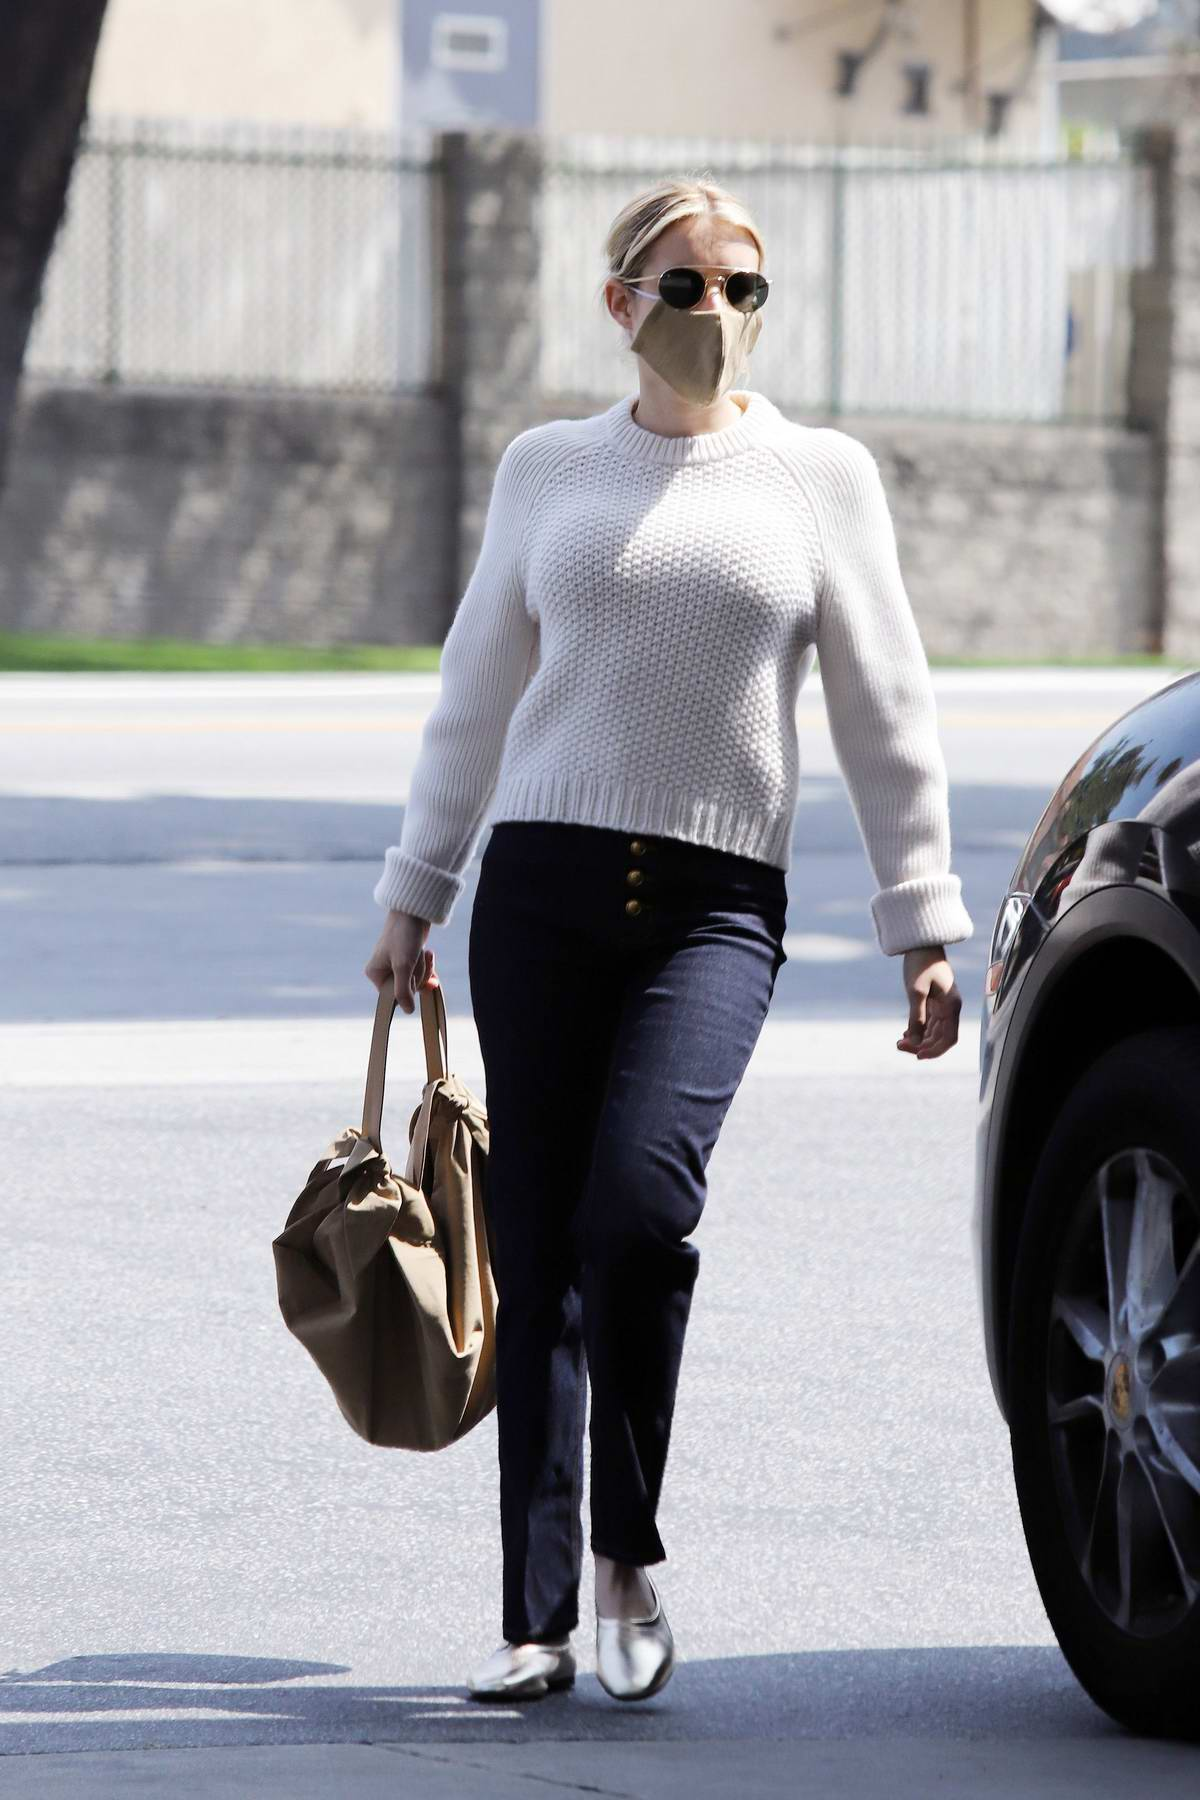 Emma Roberts seen wearing a white sweater and black jeans as she steps out in Los Angeles